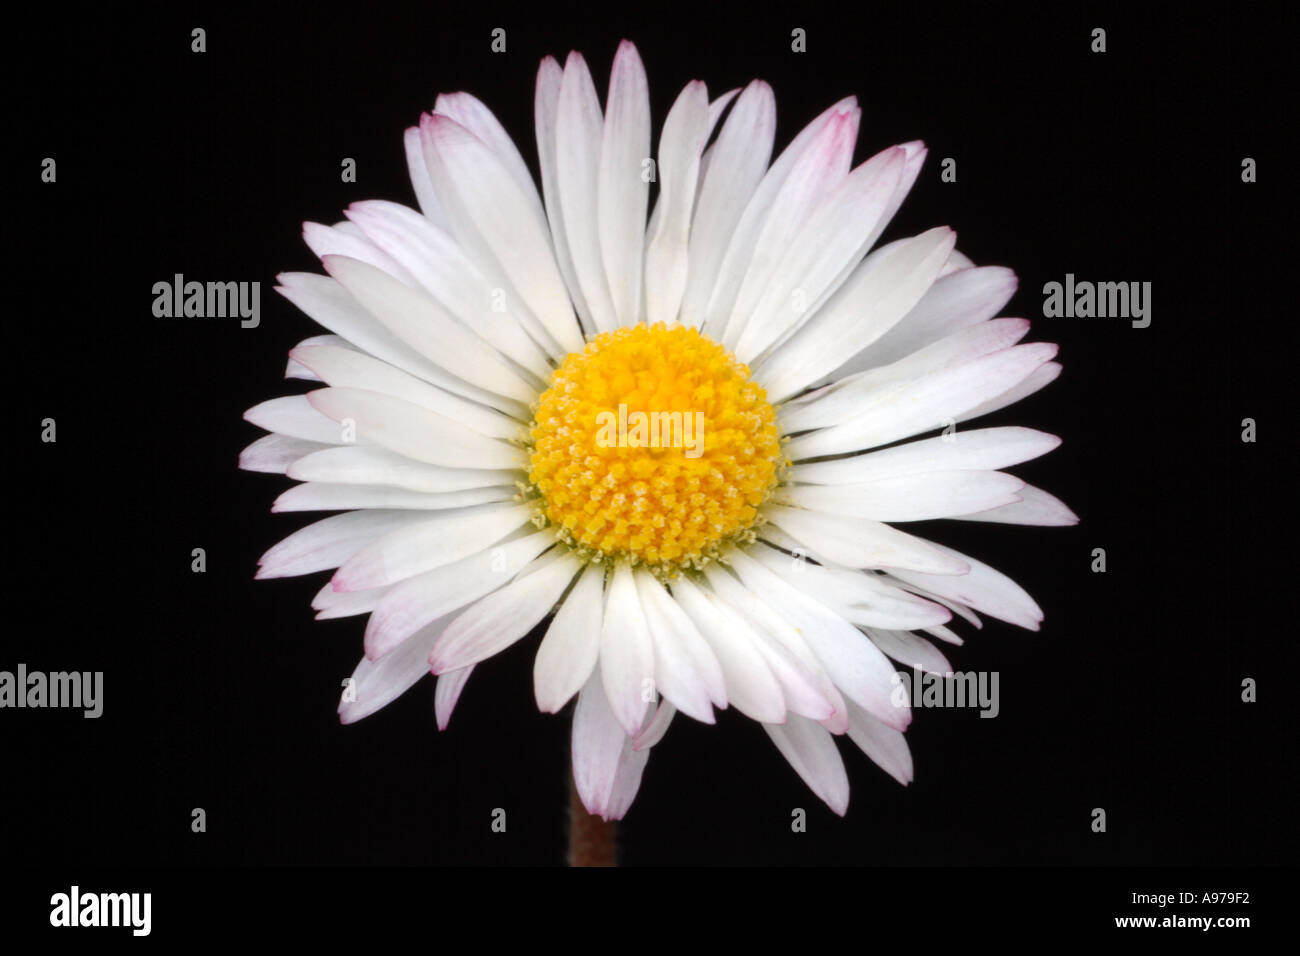 Close up of open, single daisy flower on black background. Pink tipped, white petals. - Stock Image